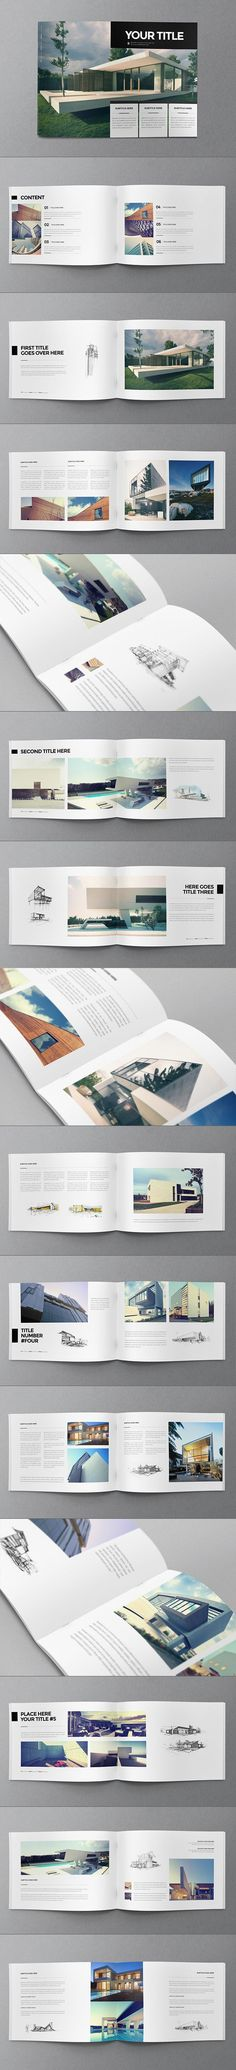 Minimal Architecture Brochure. Download here: http://graphicriver.net/item/minimal-architecture-brochure/9936143?ref=abradesign #design #brochure